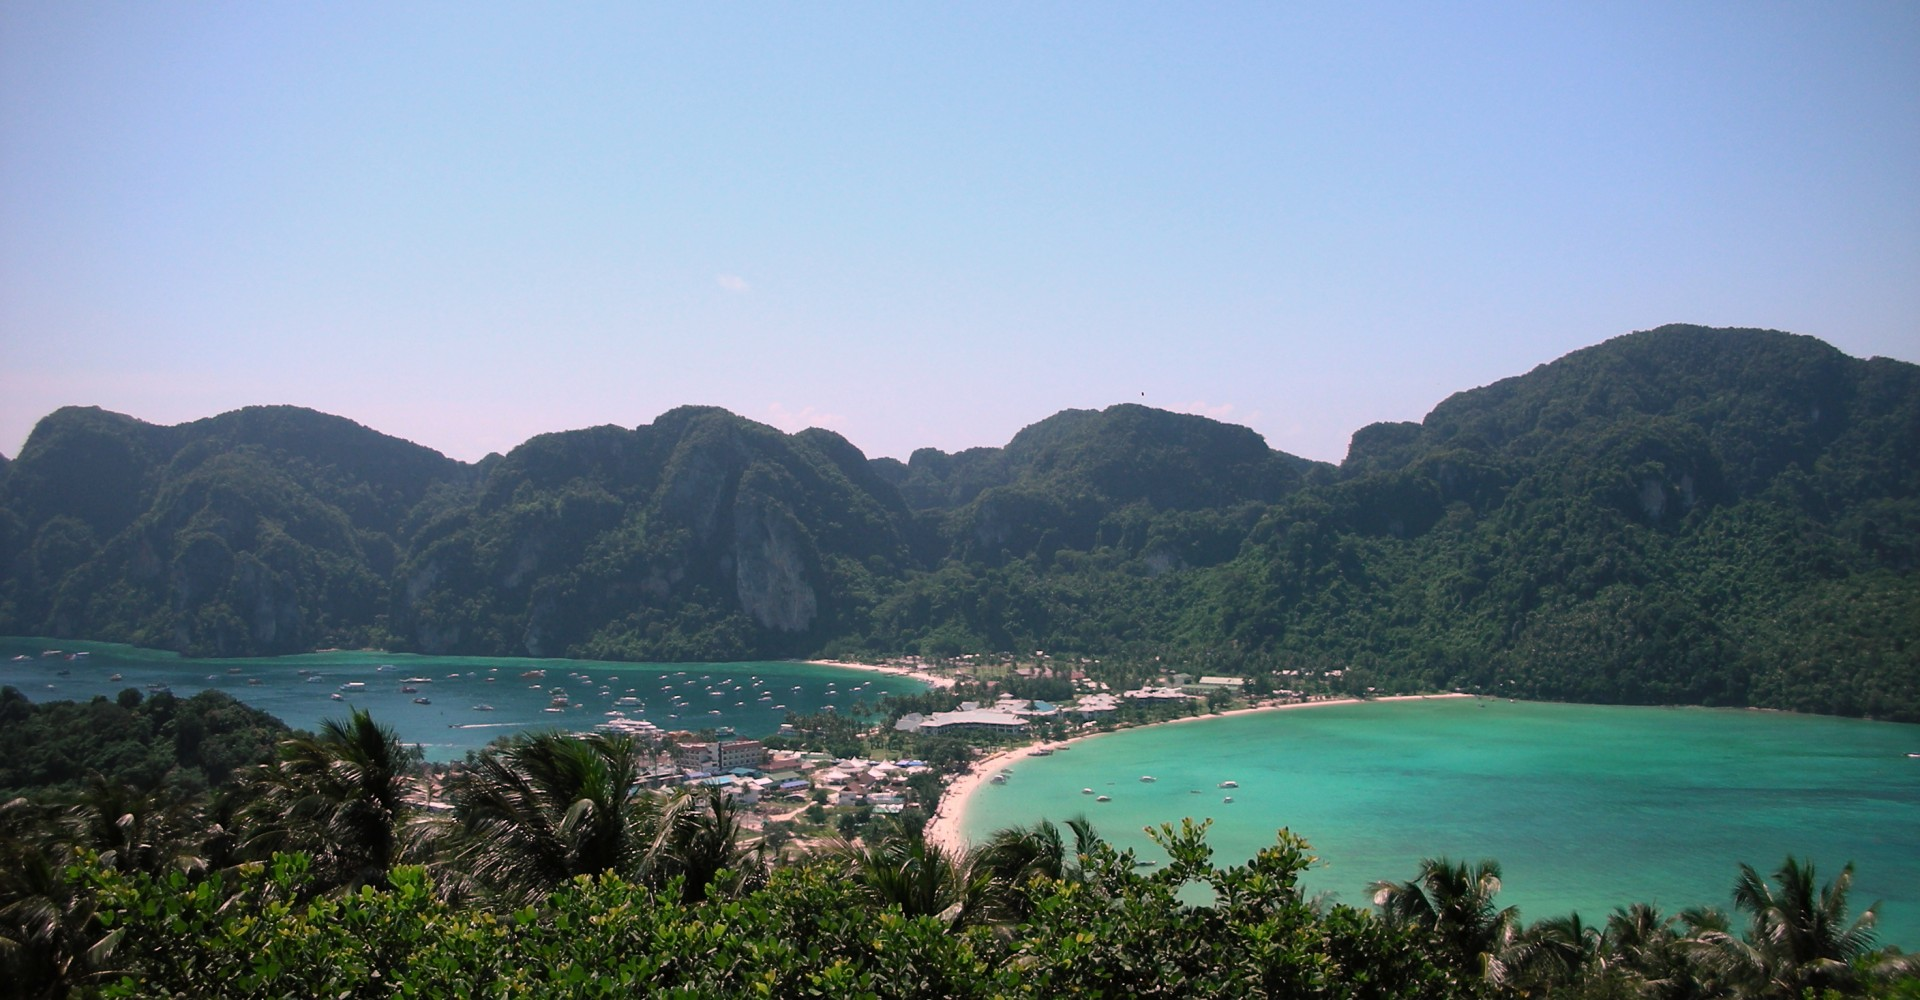 The Andaman Islands: Ko Phi Phi, Ko Lanta & Rai Leh Beach